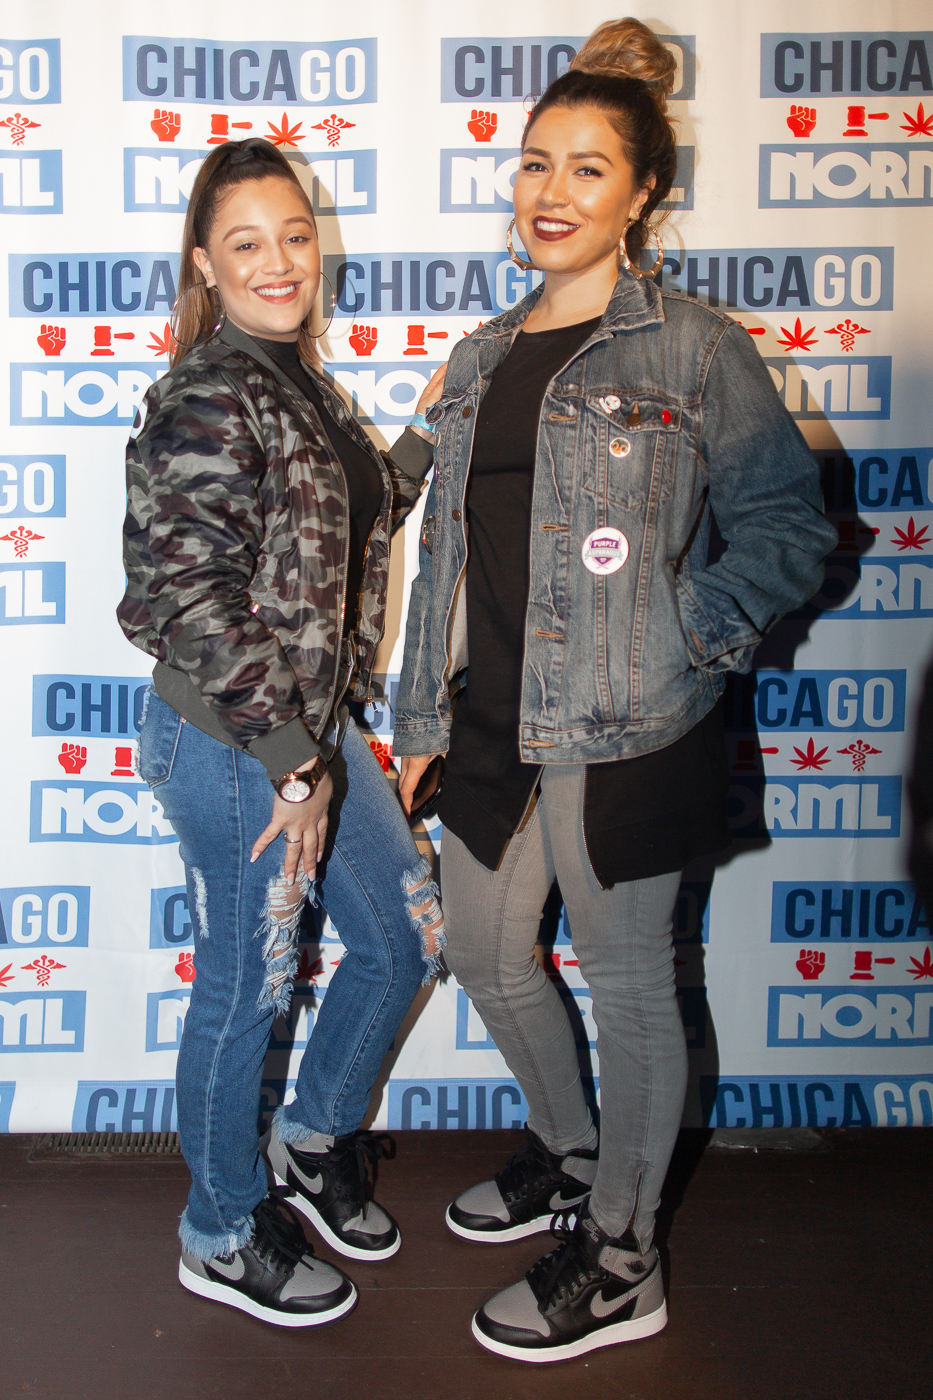 Copy of 20180420 - Chicago Norml-39.jpg